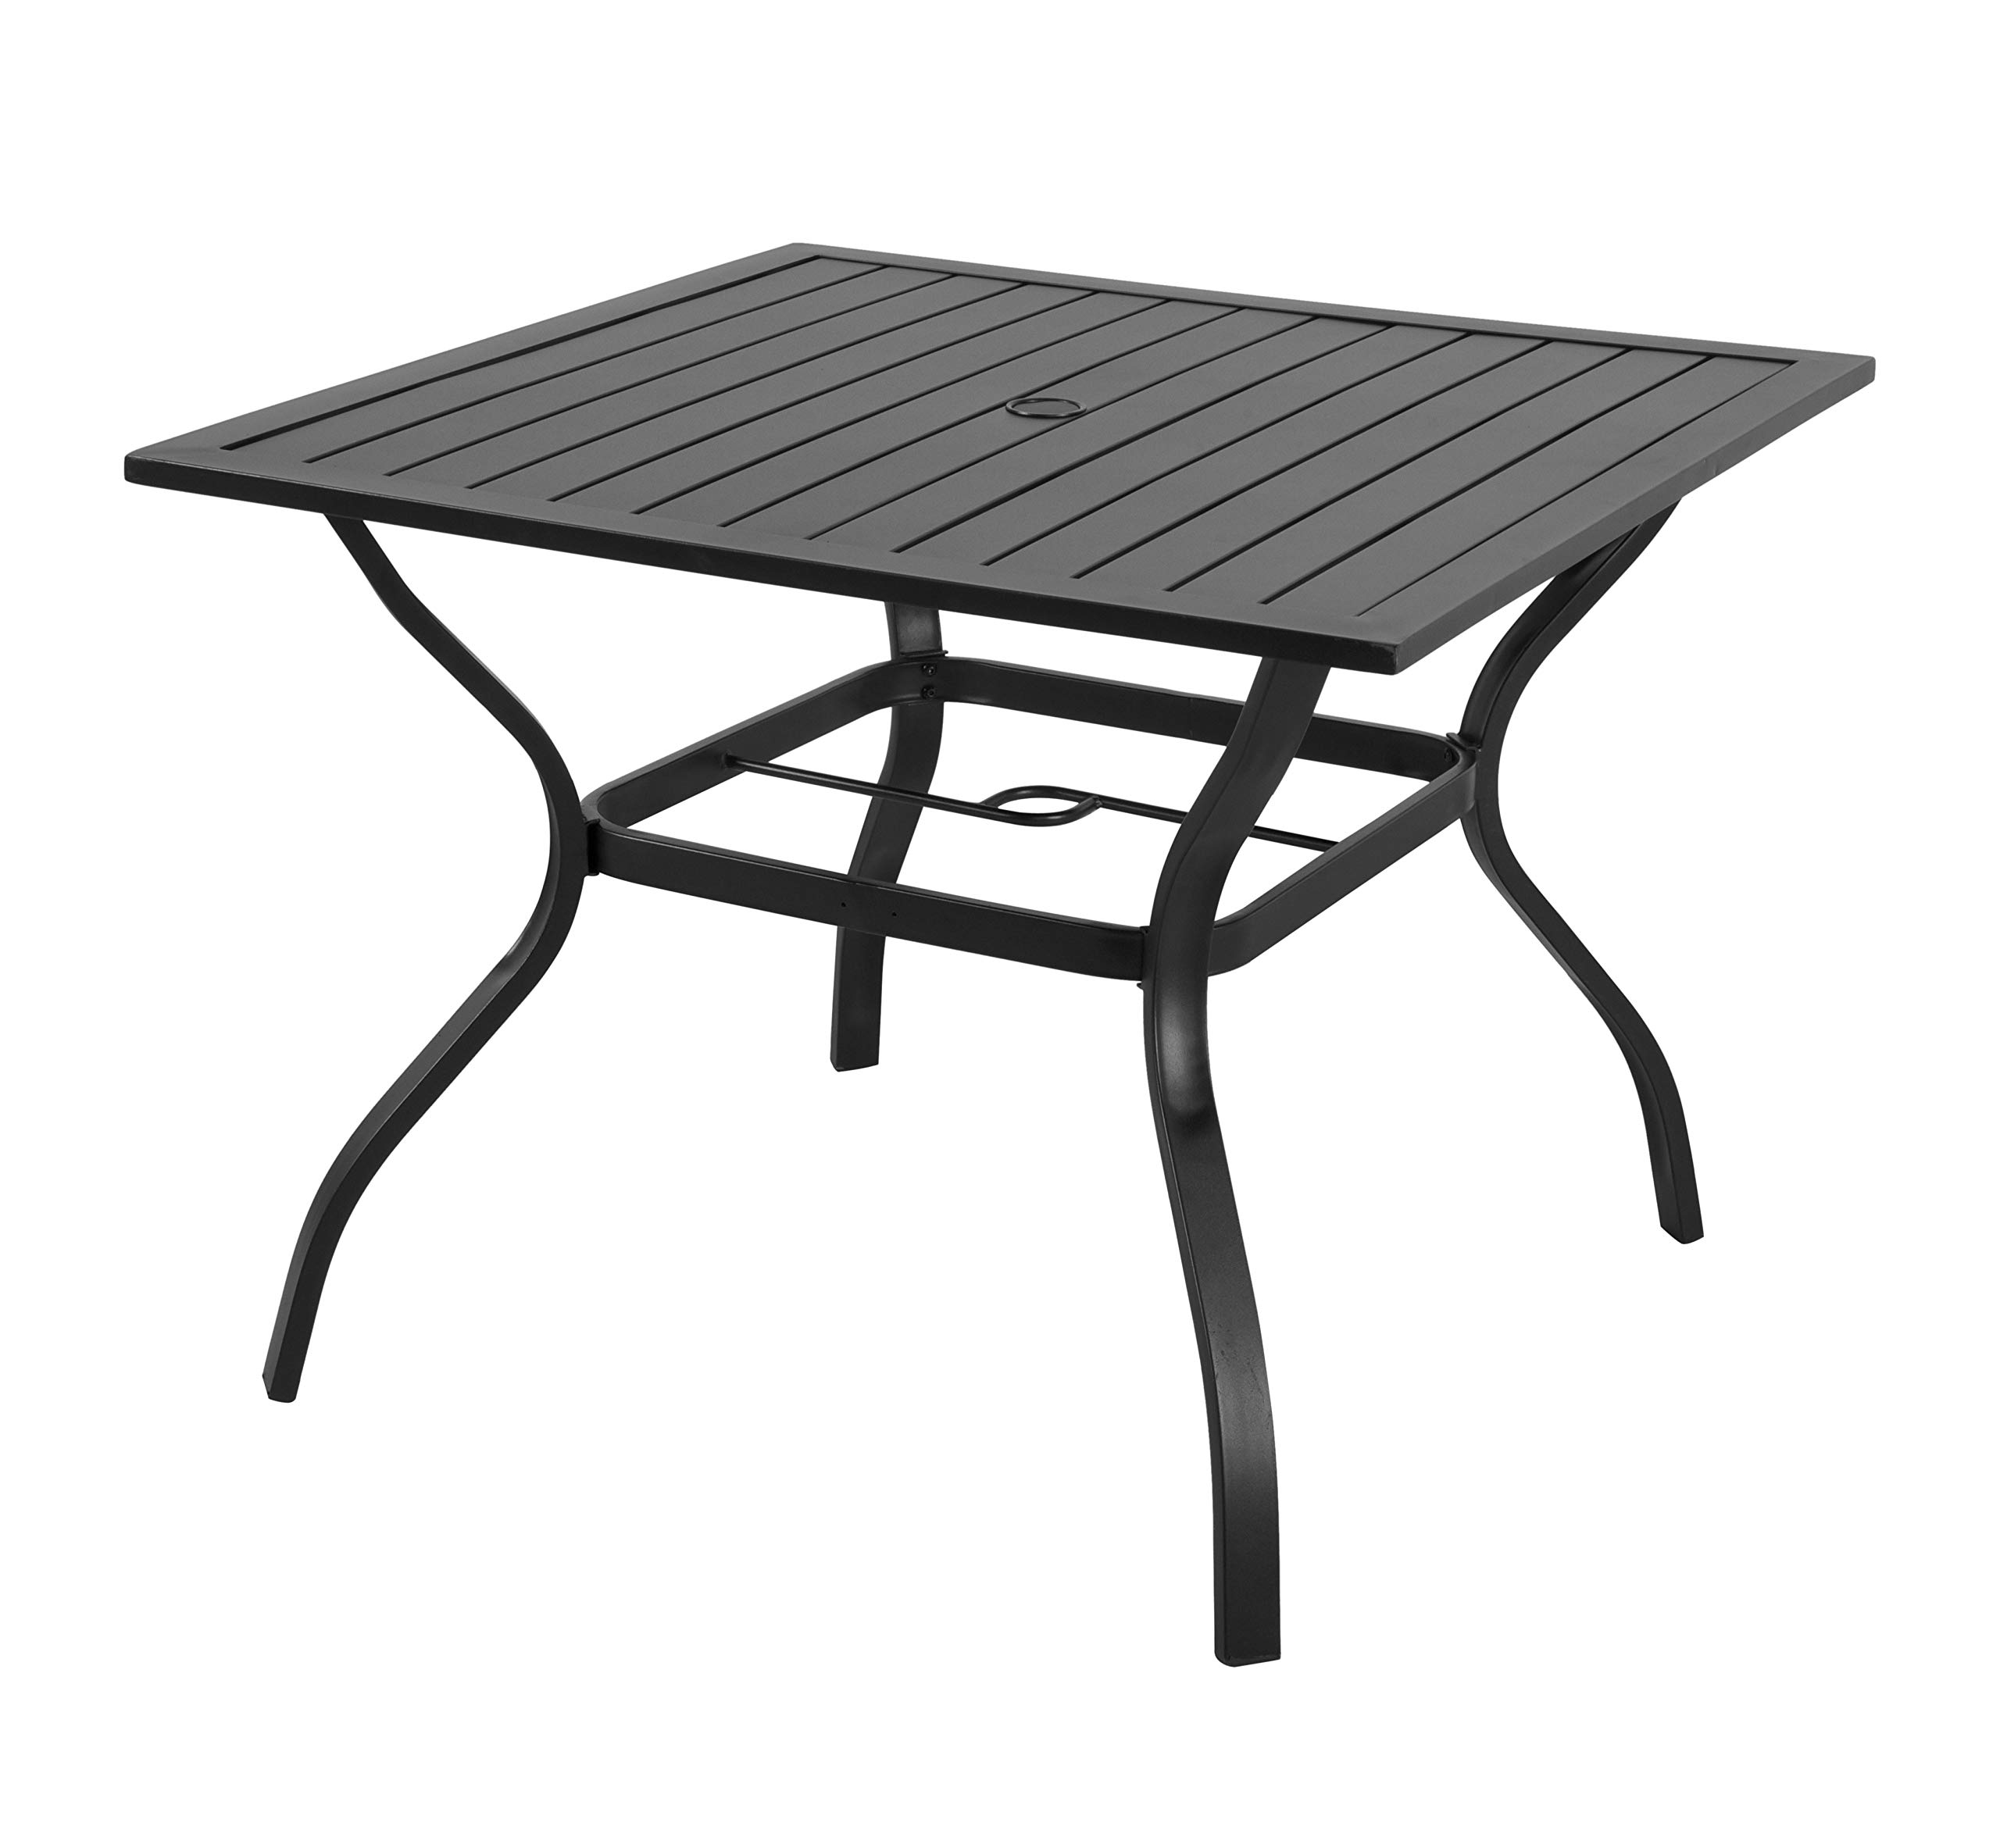 EMERIT Outdoor Patio Bistro Metal Dining Table with Umbrella Hole 37''x37'',Black (Dining Table) by EMERIT